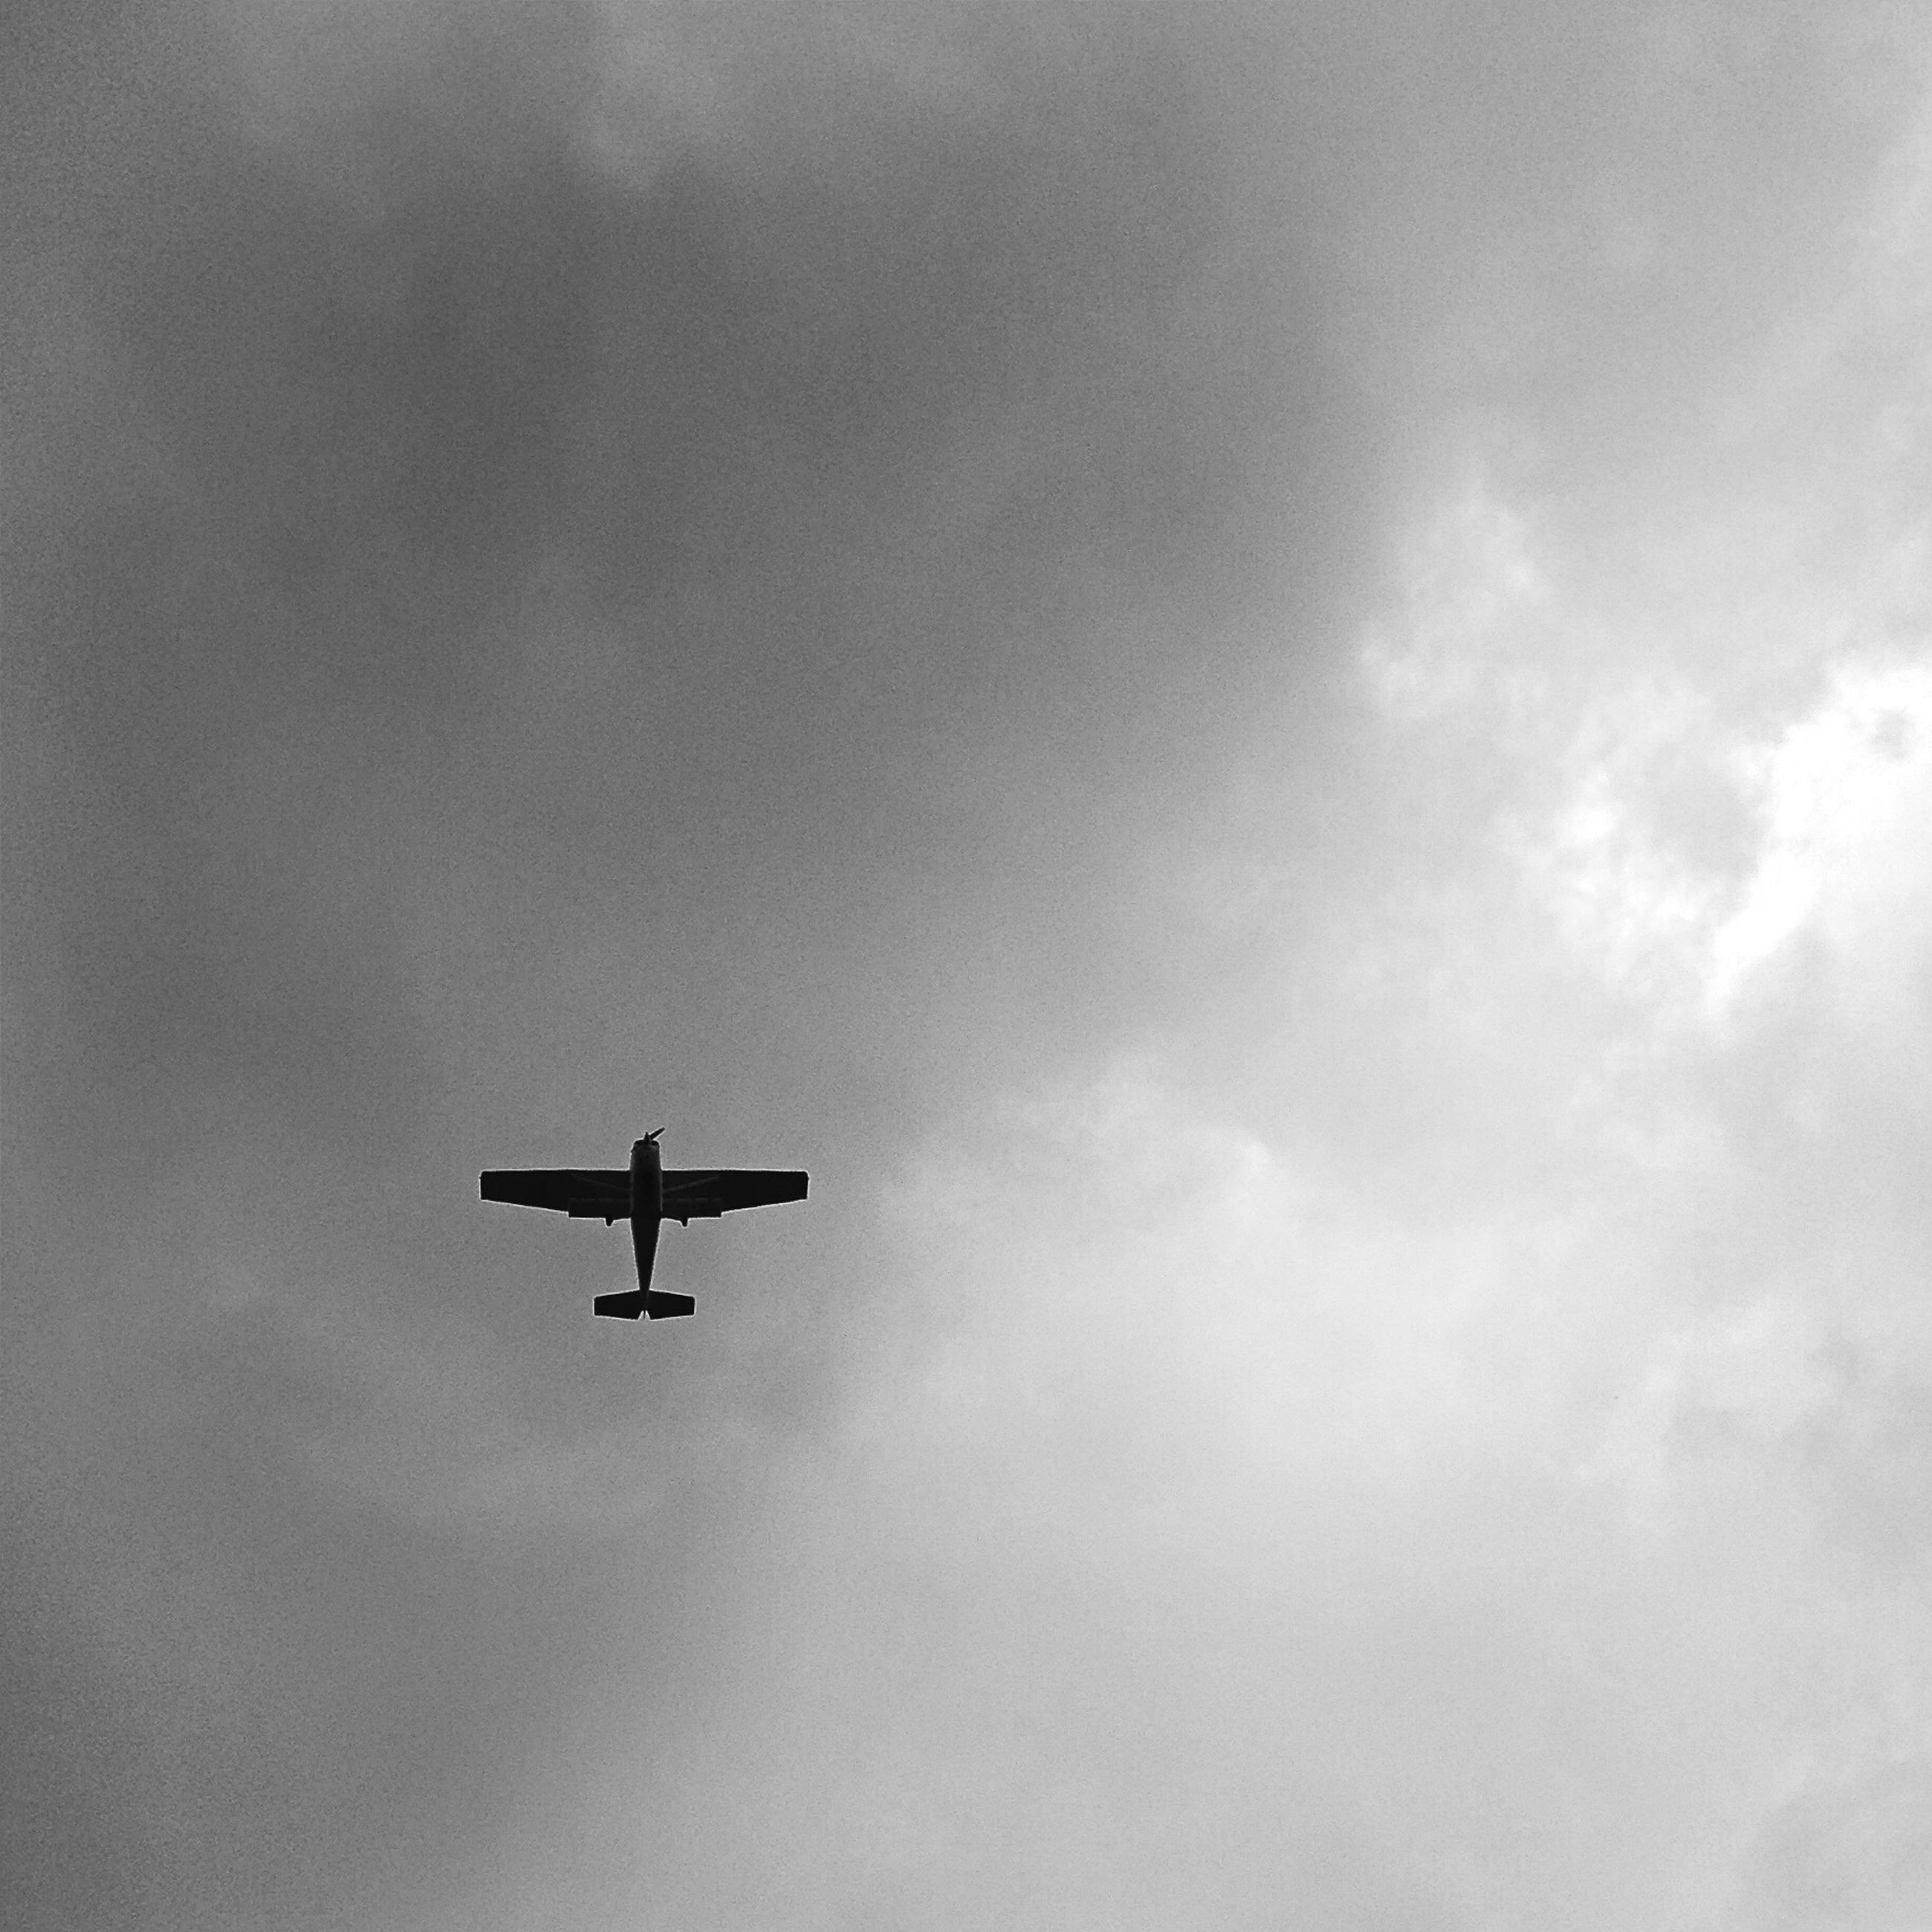 flying, airplane, air vehicle, low angle view, transportation, mode of transport, mid-air, sky, cloud - sky, on the move, travel, journey, commercial airplane, silhouette, public transportation, outdoors, copy space, helicopter, day, cloudy